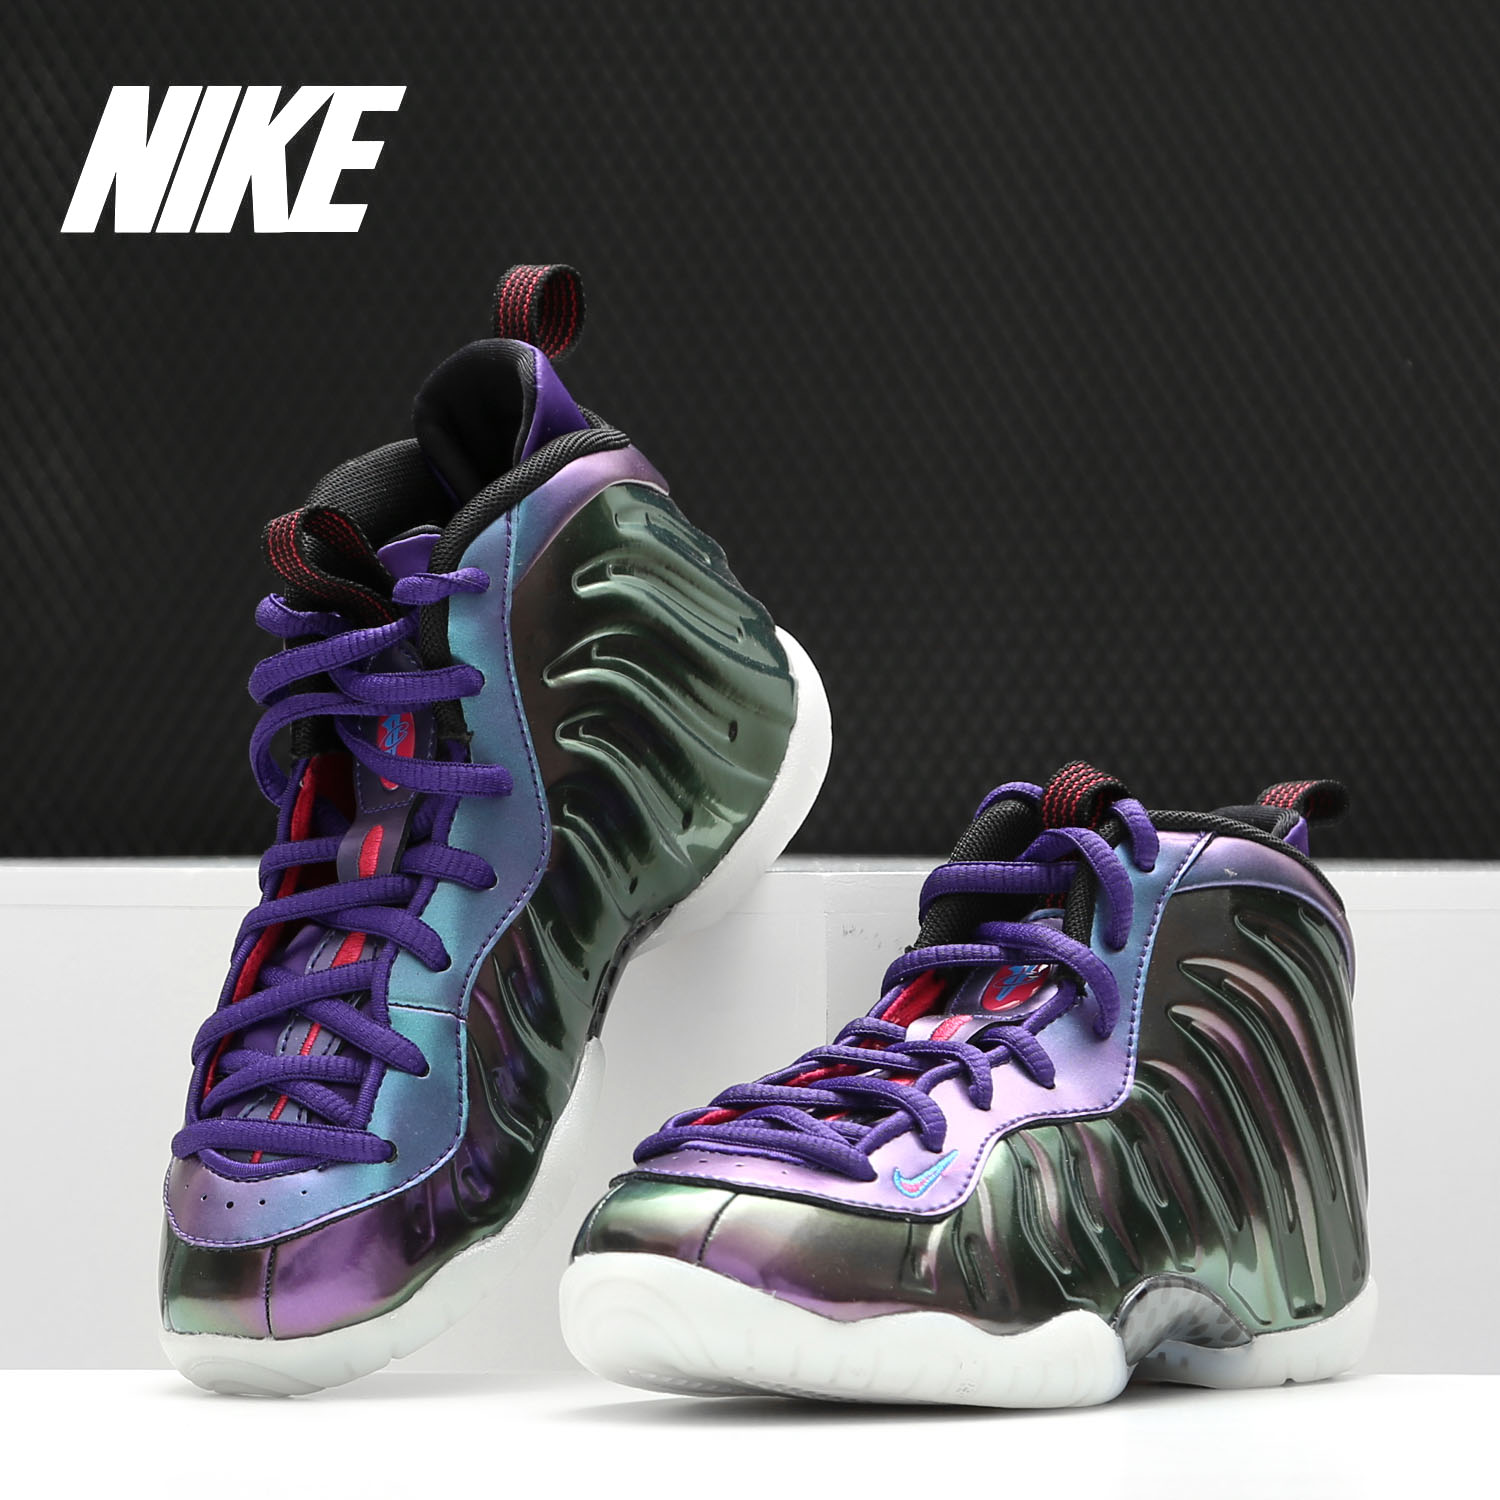 Nike/耐克正品 LITTLE POSITE ONE PS 儿童男女篮球鞋723946-602